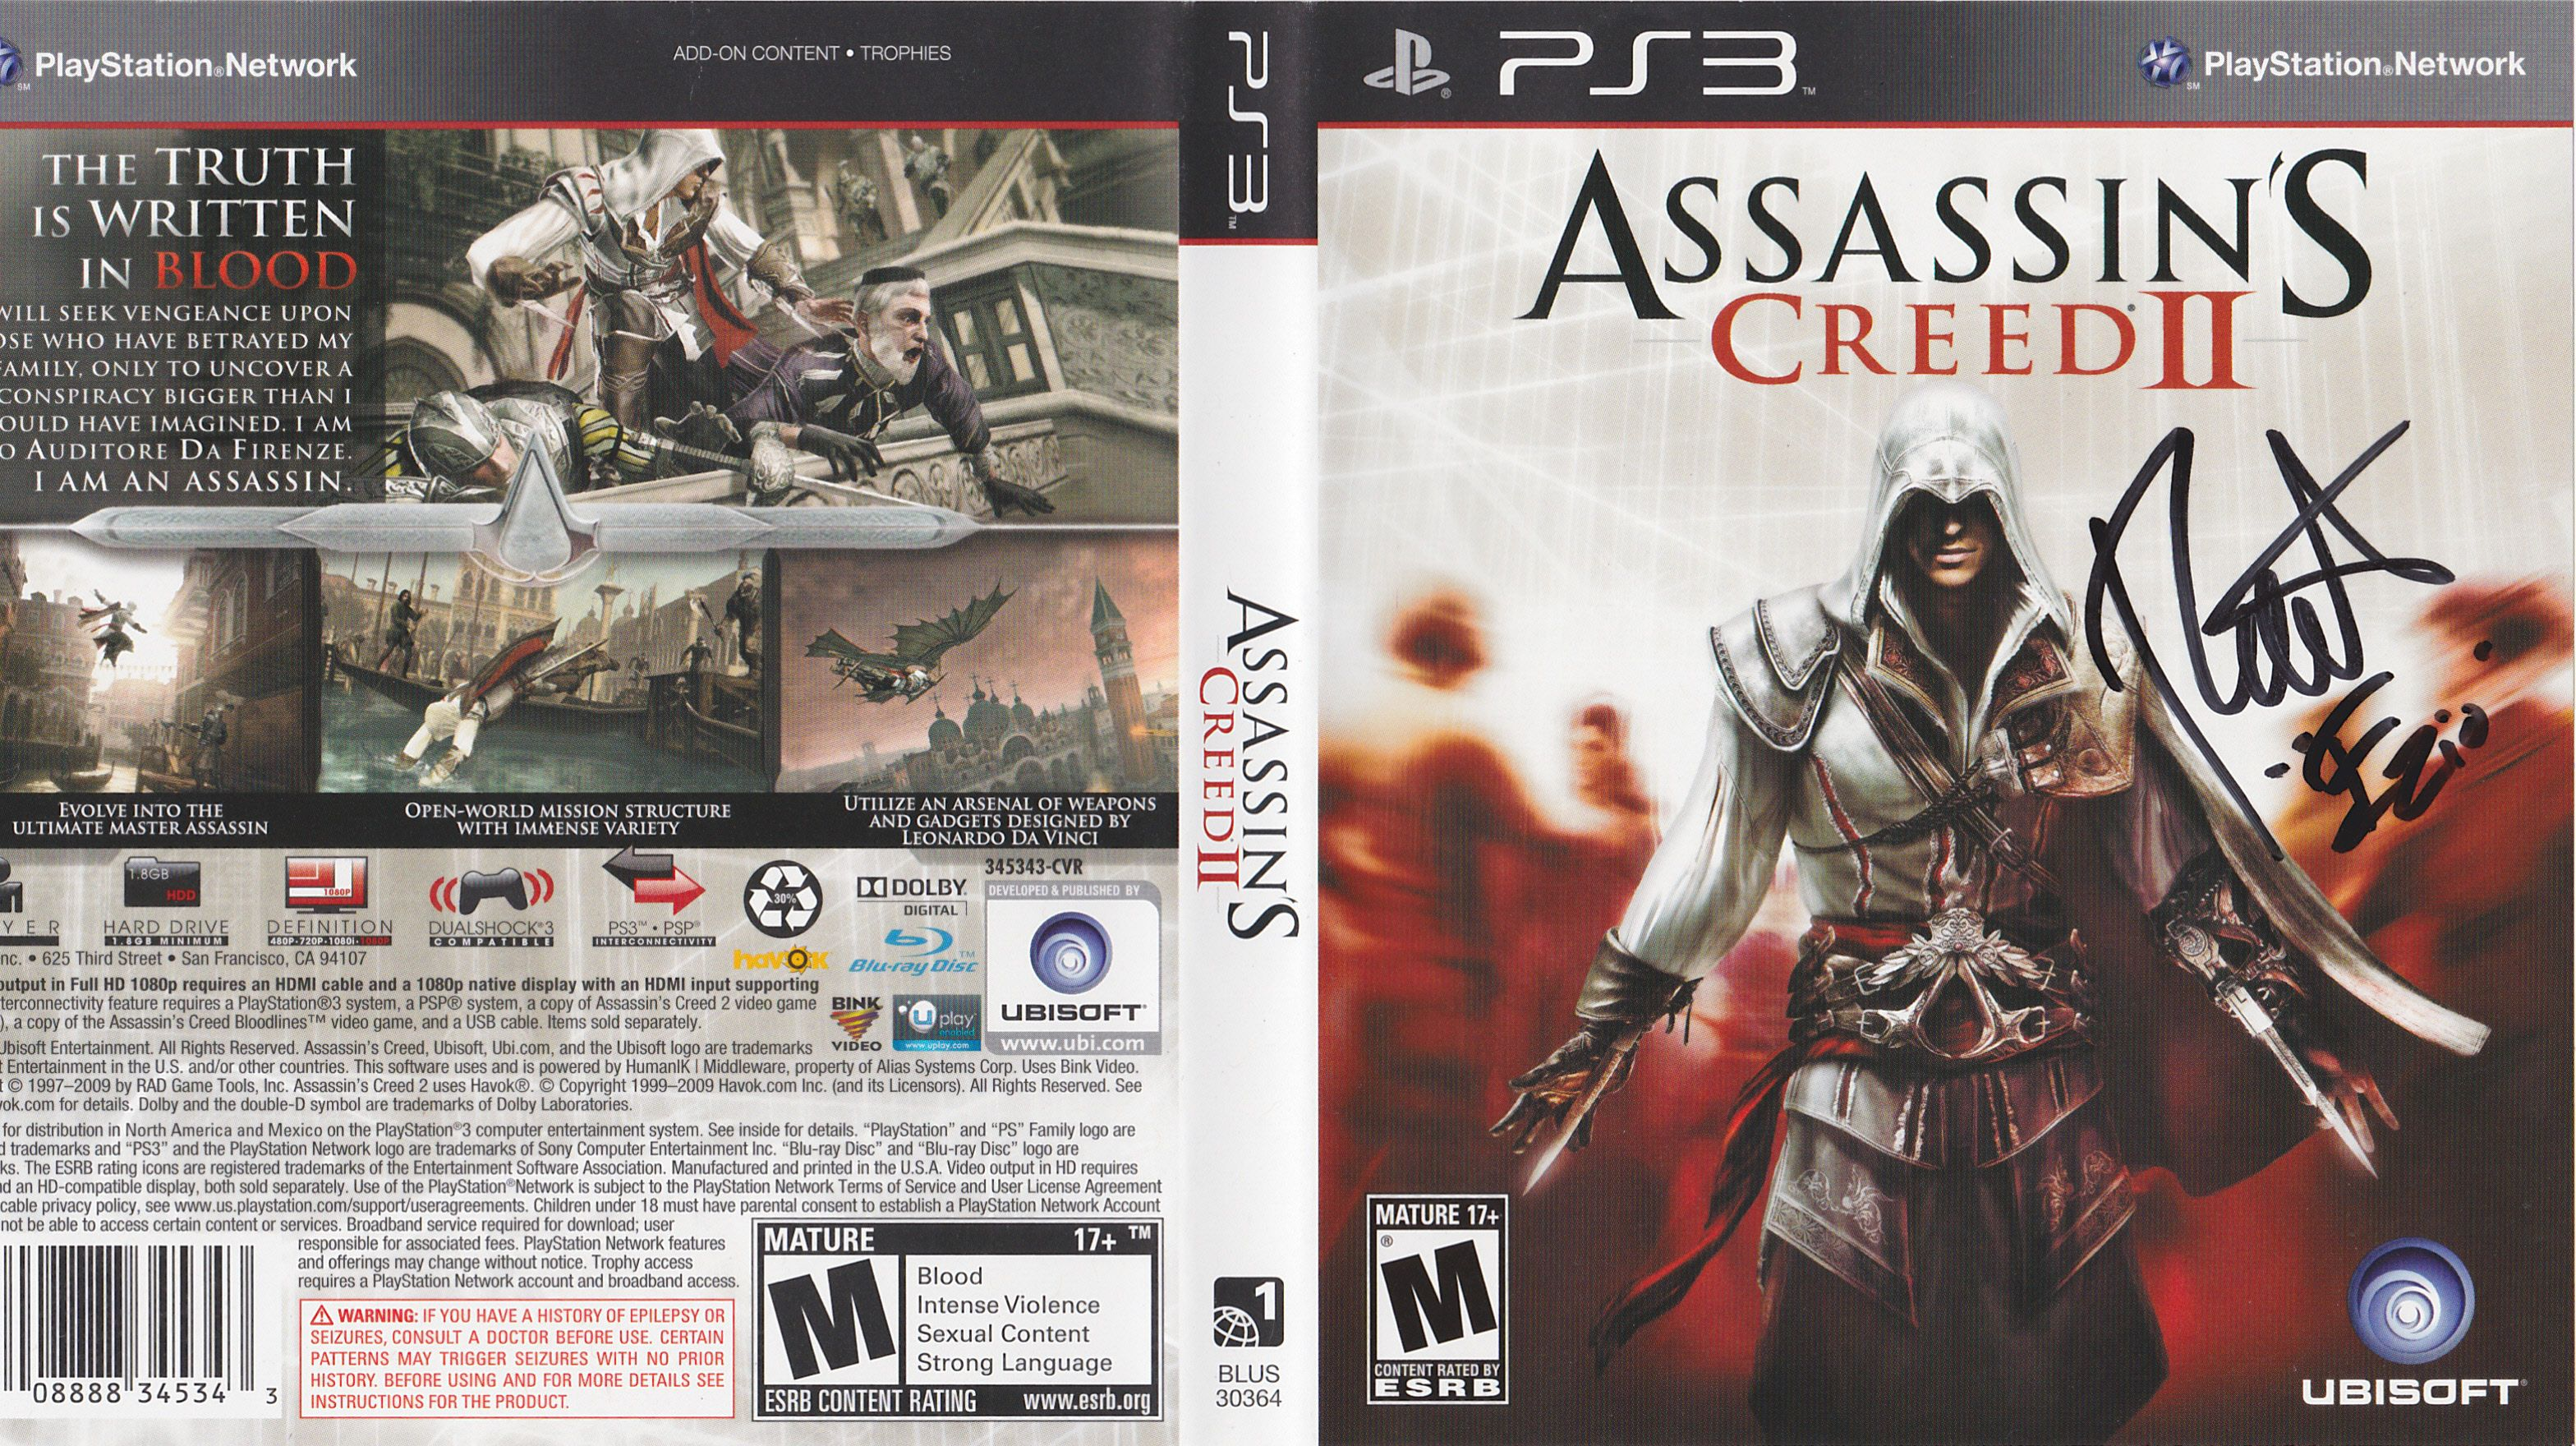 designe assassins creed2 ost - HD 3136×1760